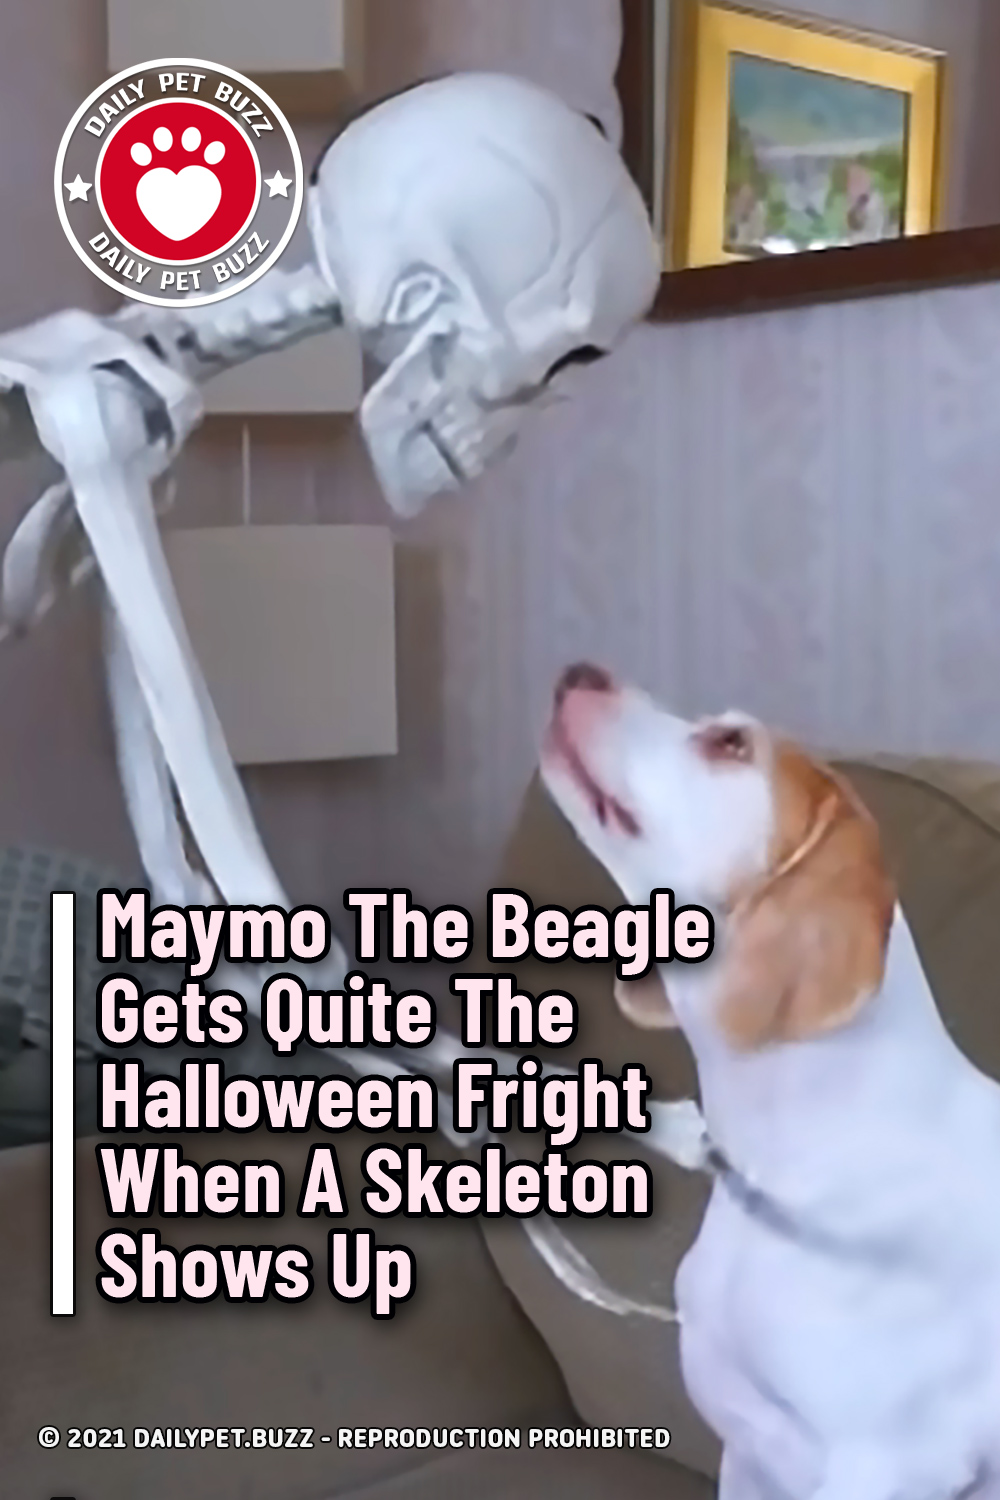 Maymo The Beagle Gets Quite The Halloween Fright When A Skeleton Shows Up